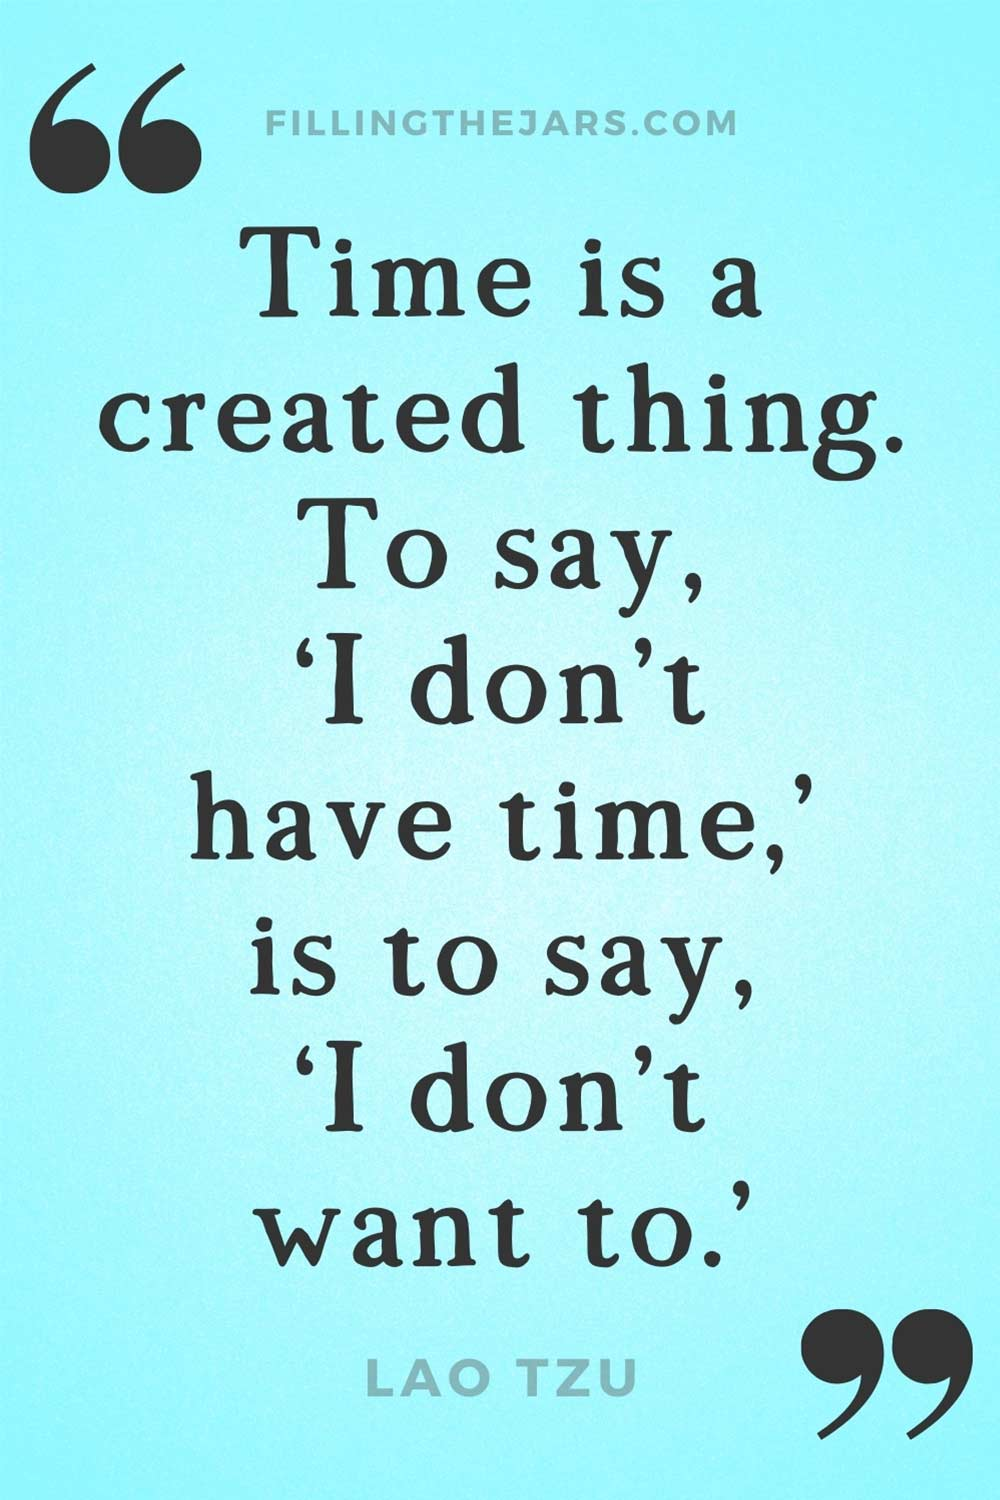 Lao Tzu quote to say I dont have time is to say I dont want to on turquoise background.